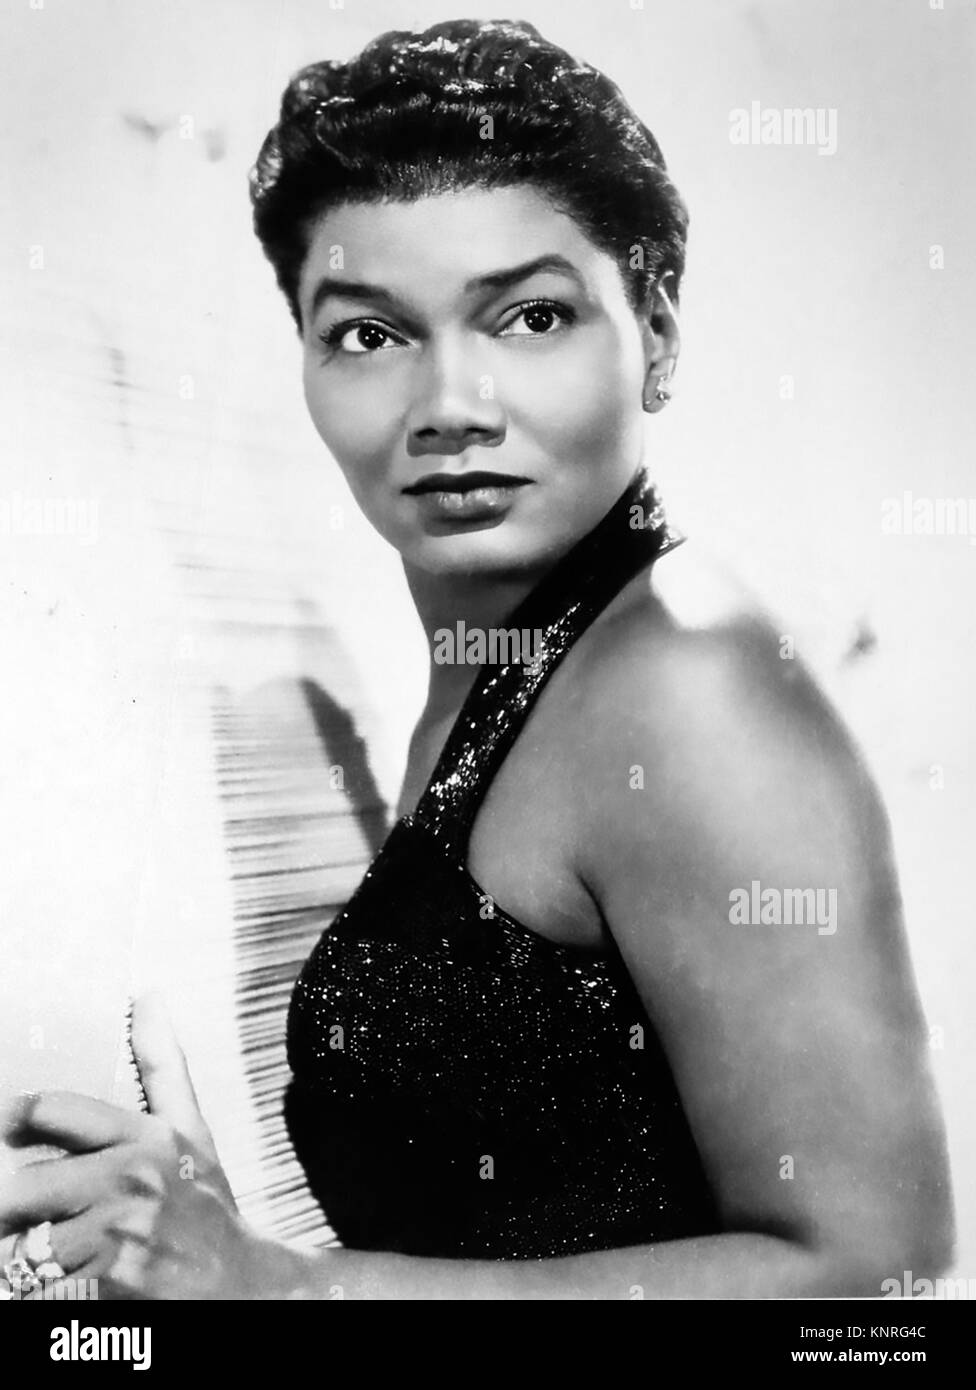 PEARL BAILEY (1918-1990) Promotional photo of American singer and film actress about 1960 - Stock Image